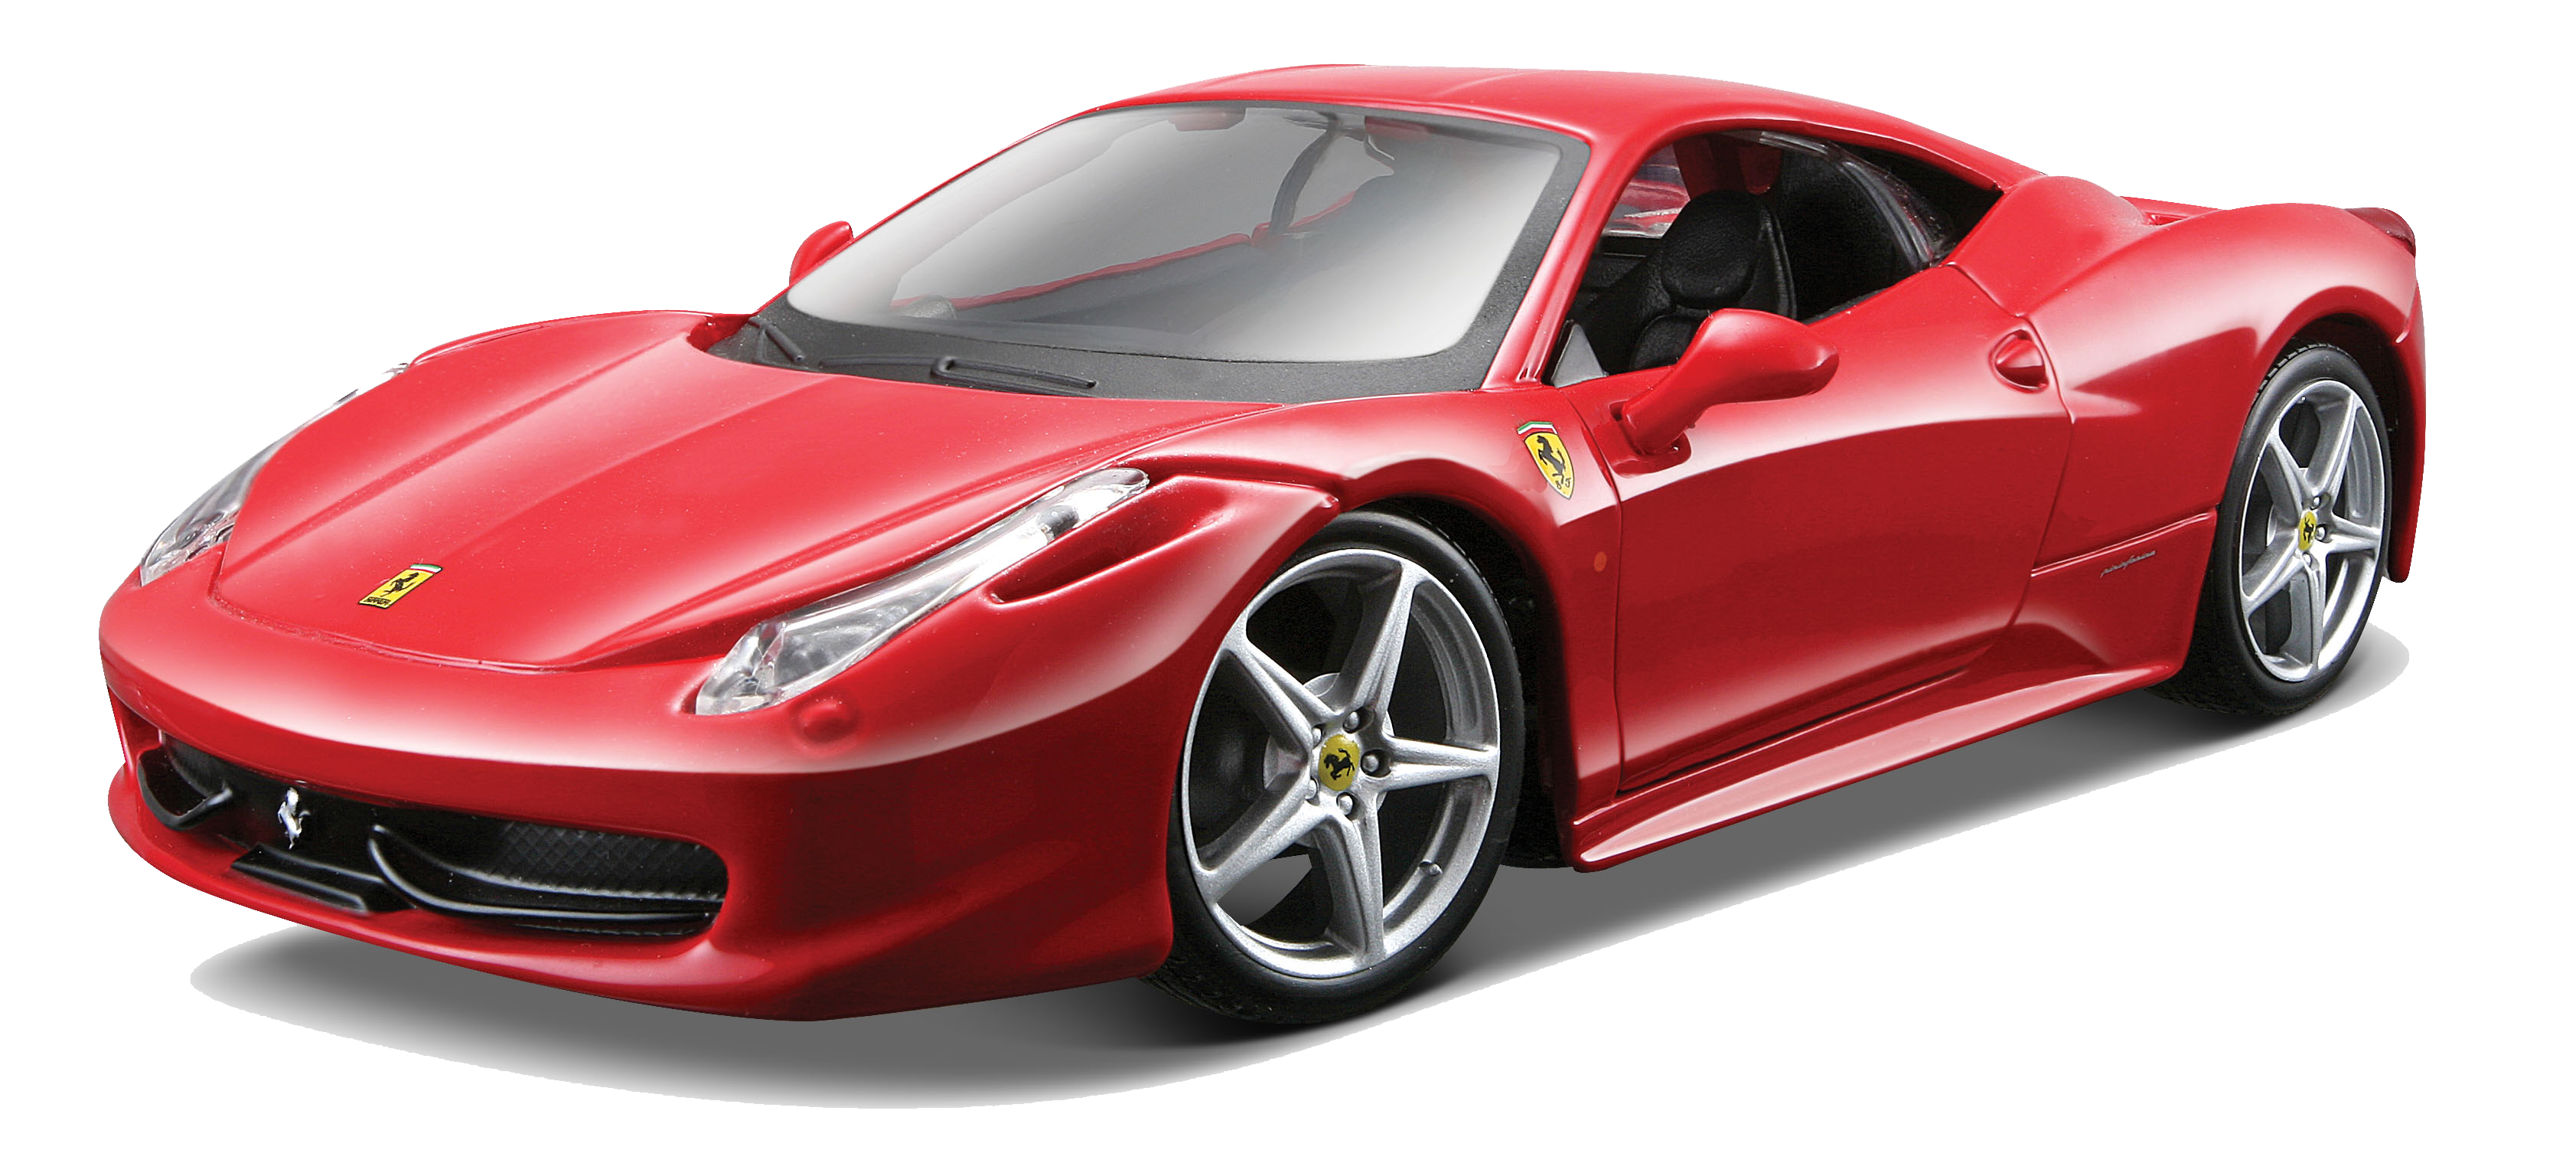 Ferrary clipart graphic freeuse download Ferrari PNG Transparent Images | PNG All graphic freeuse download